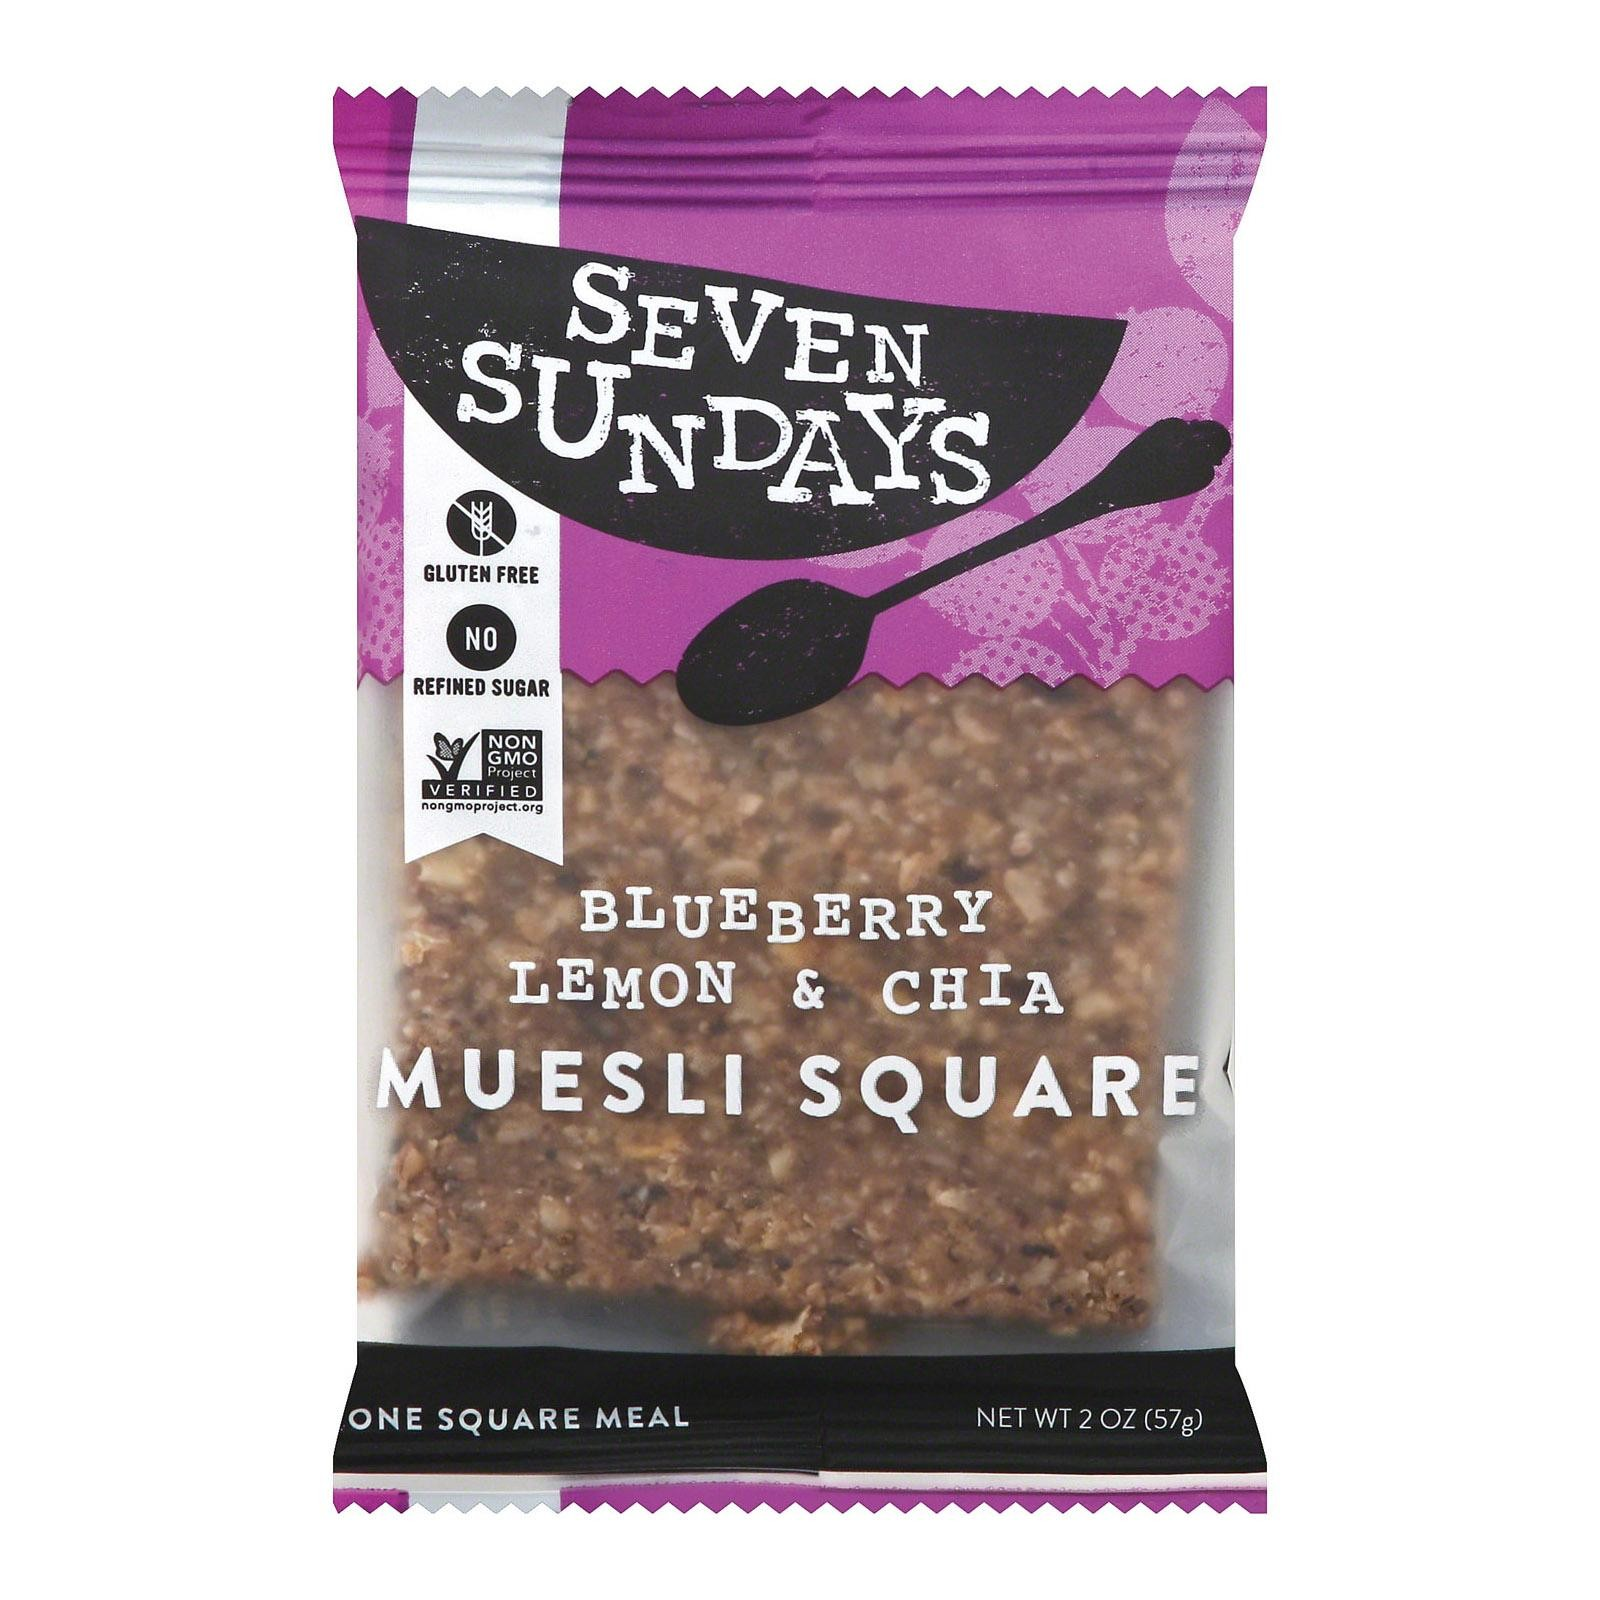 Seven Sundays Muesli Square - Blueberry Lemon And Chia - pack of 10 - 2 Oz.